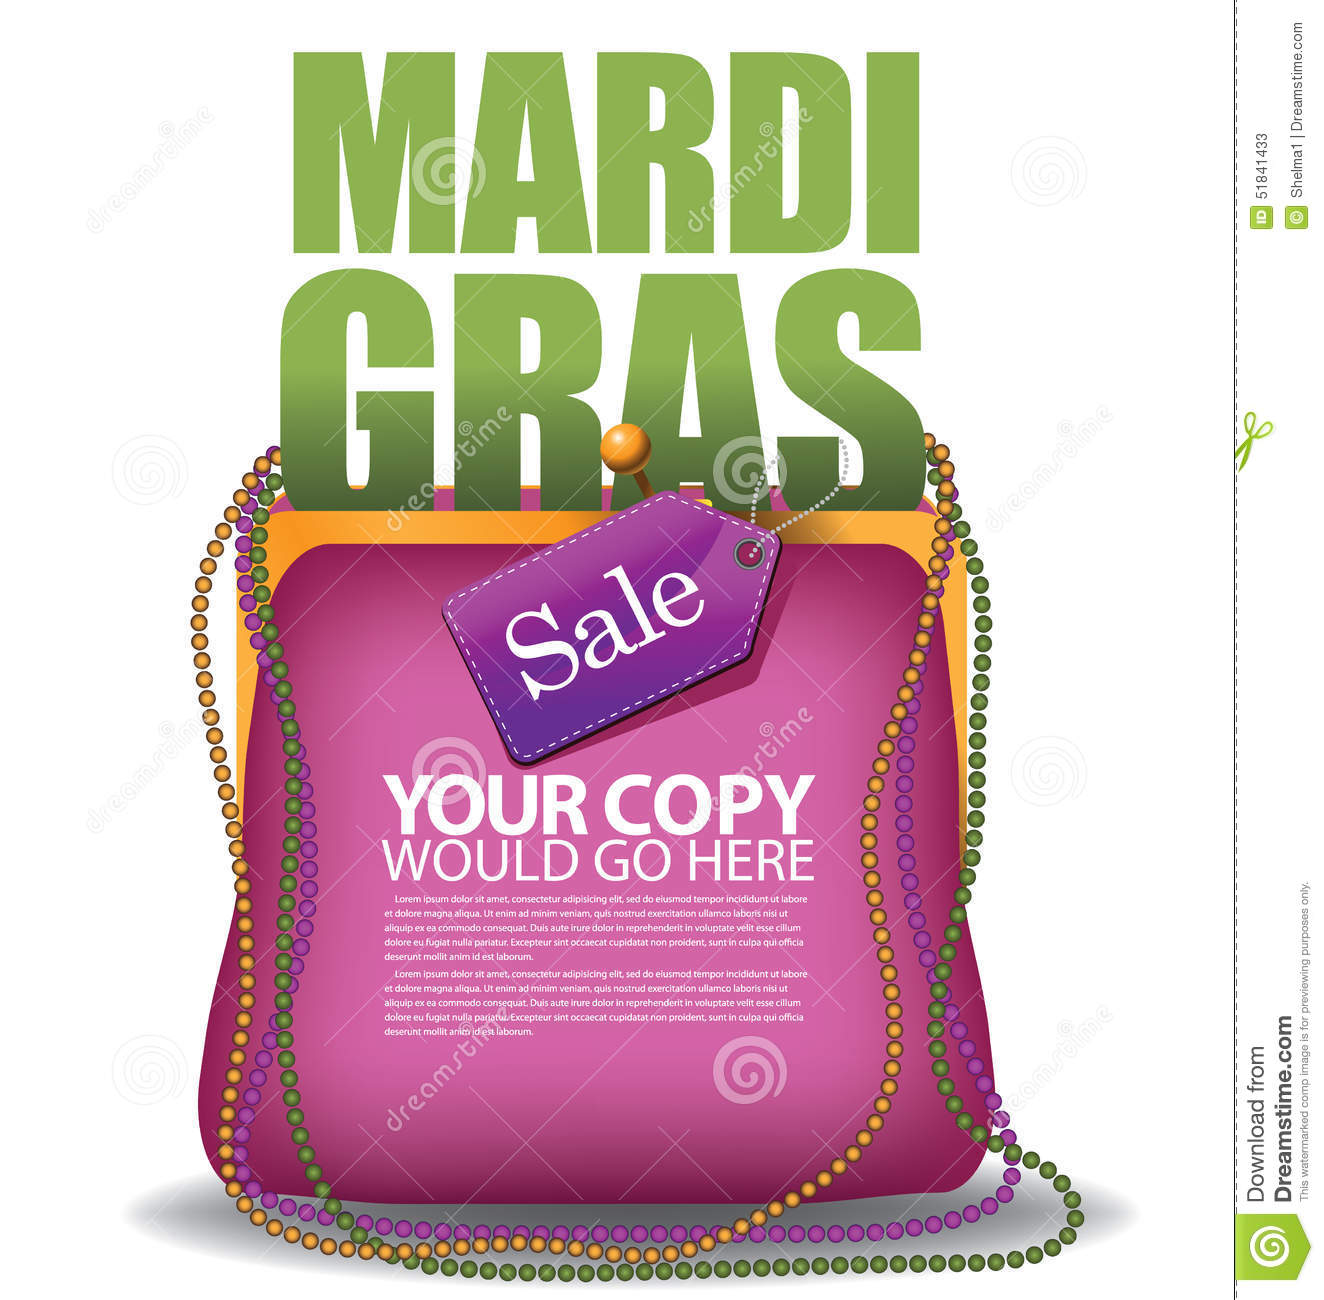 f9ec8ca318 Mardi Gras purse background EPS 10 vector royalty free stock illustration  for greeting card